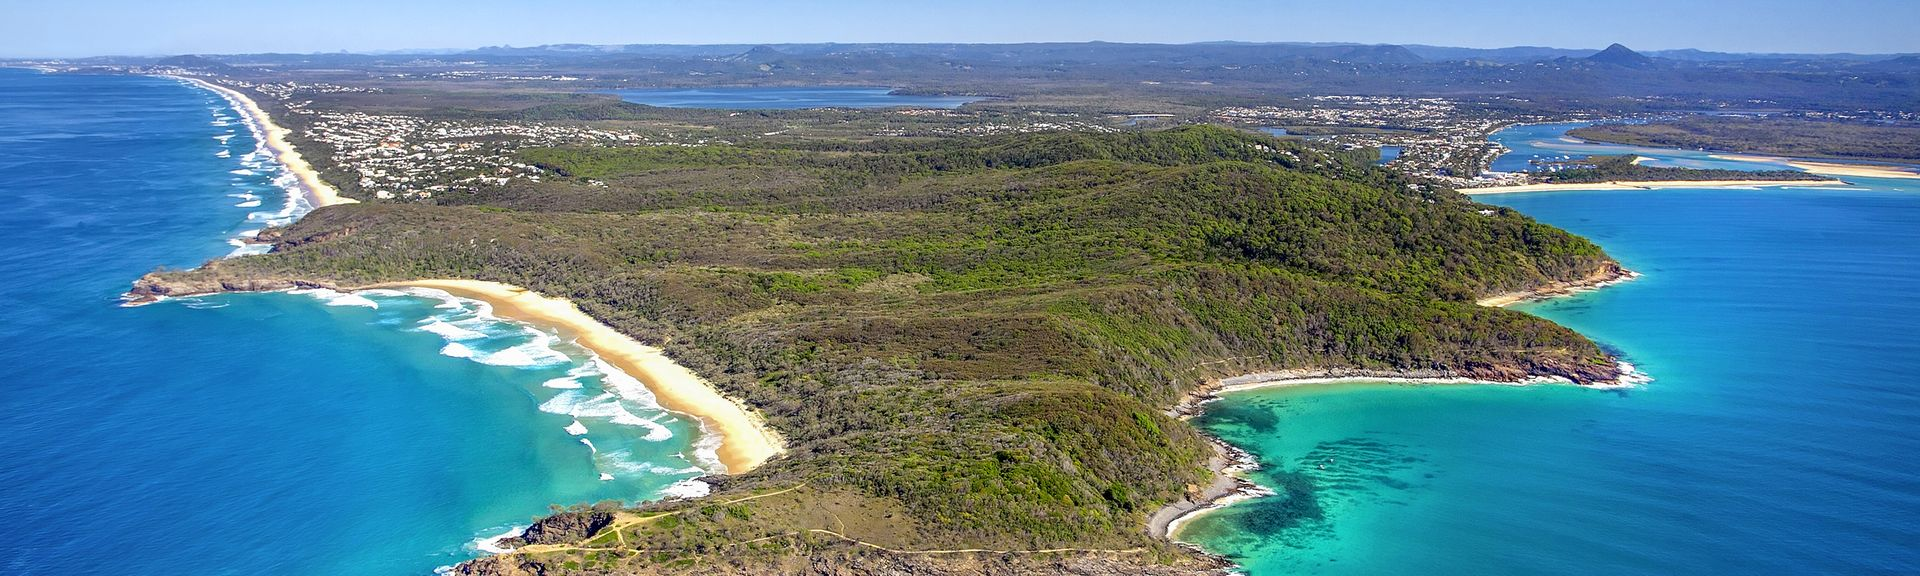 Noosa Hill, Noosa Heads, Queensland, Australia